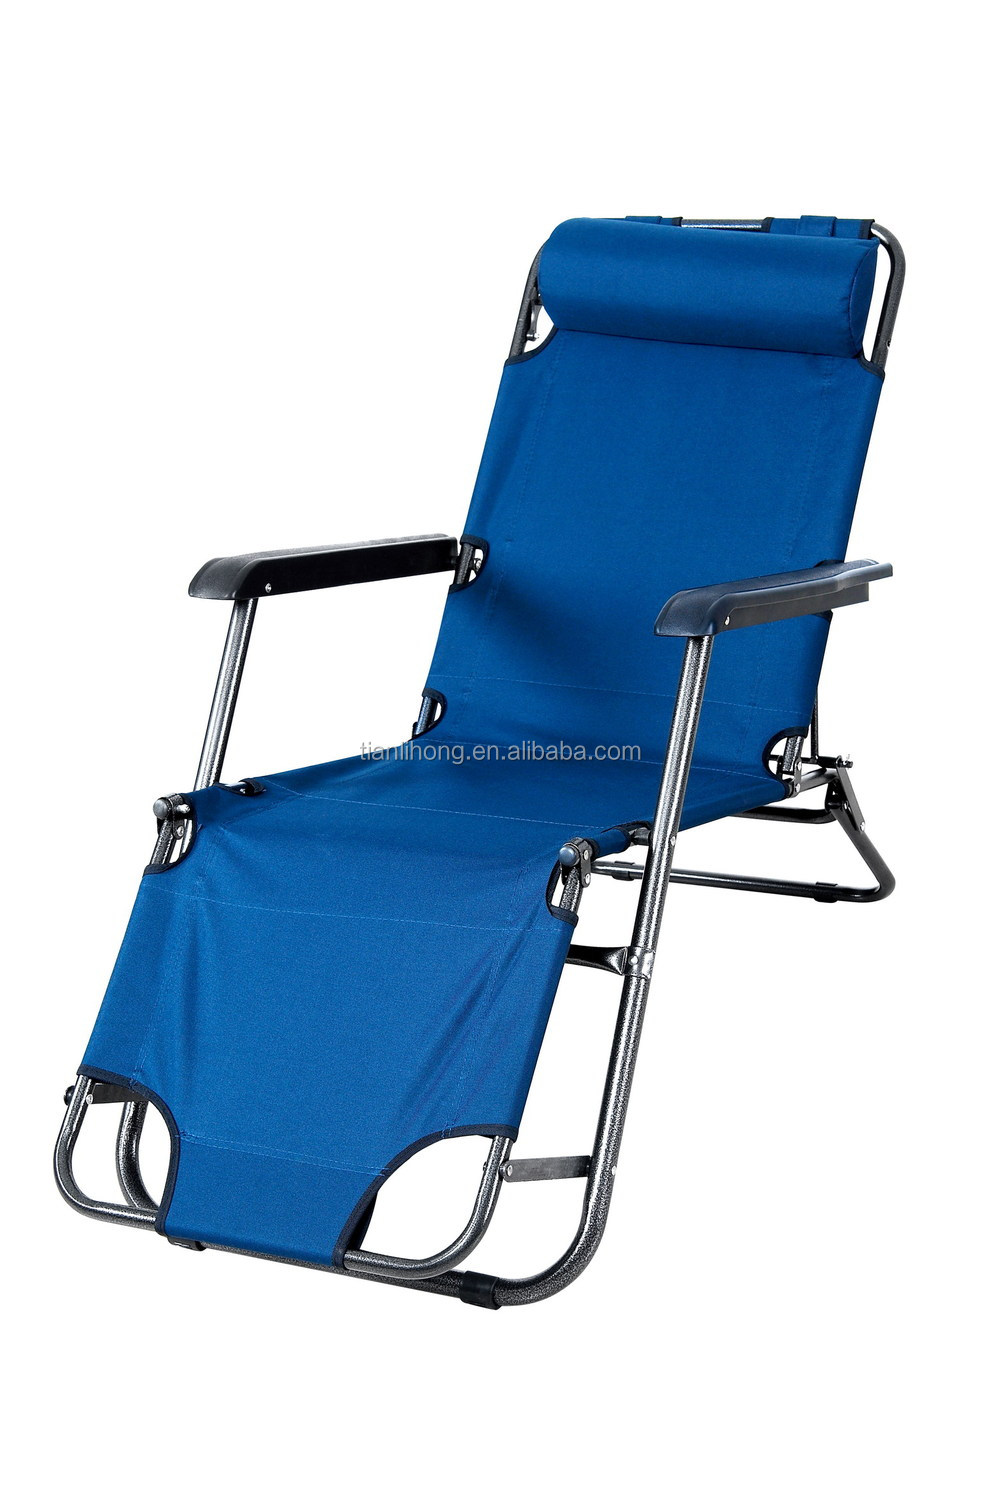 Multi functional Folding Lounge Chair Beach Chair Sleeping Chair Buy Cheap